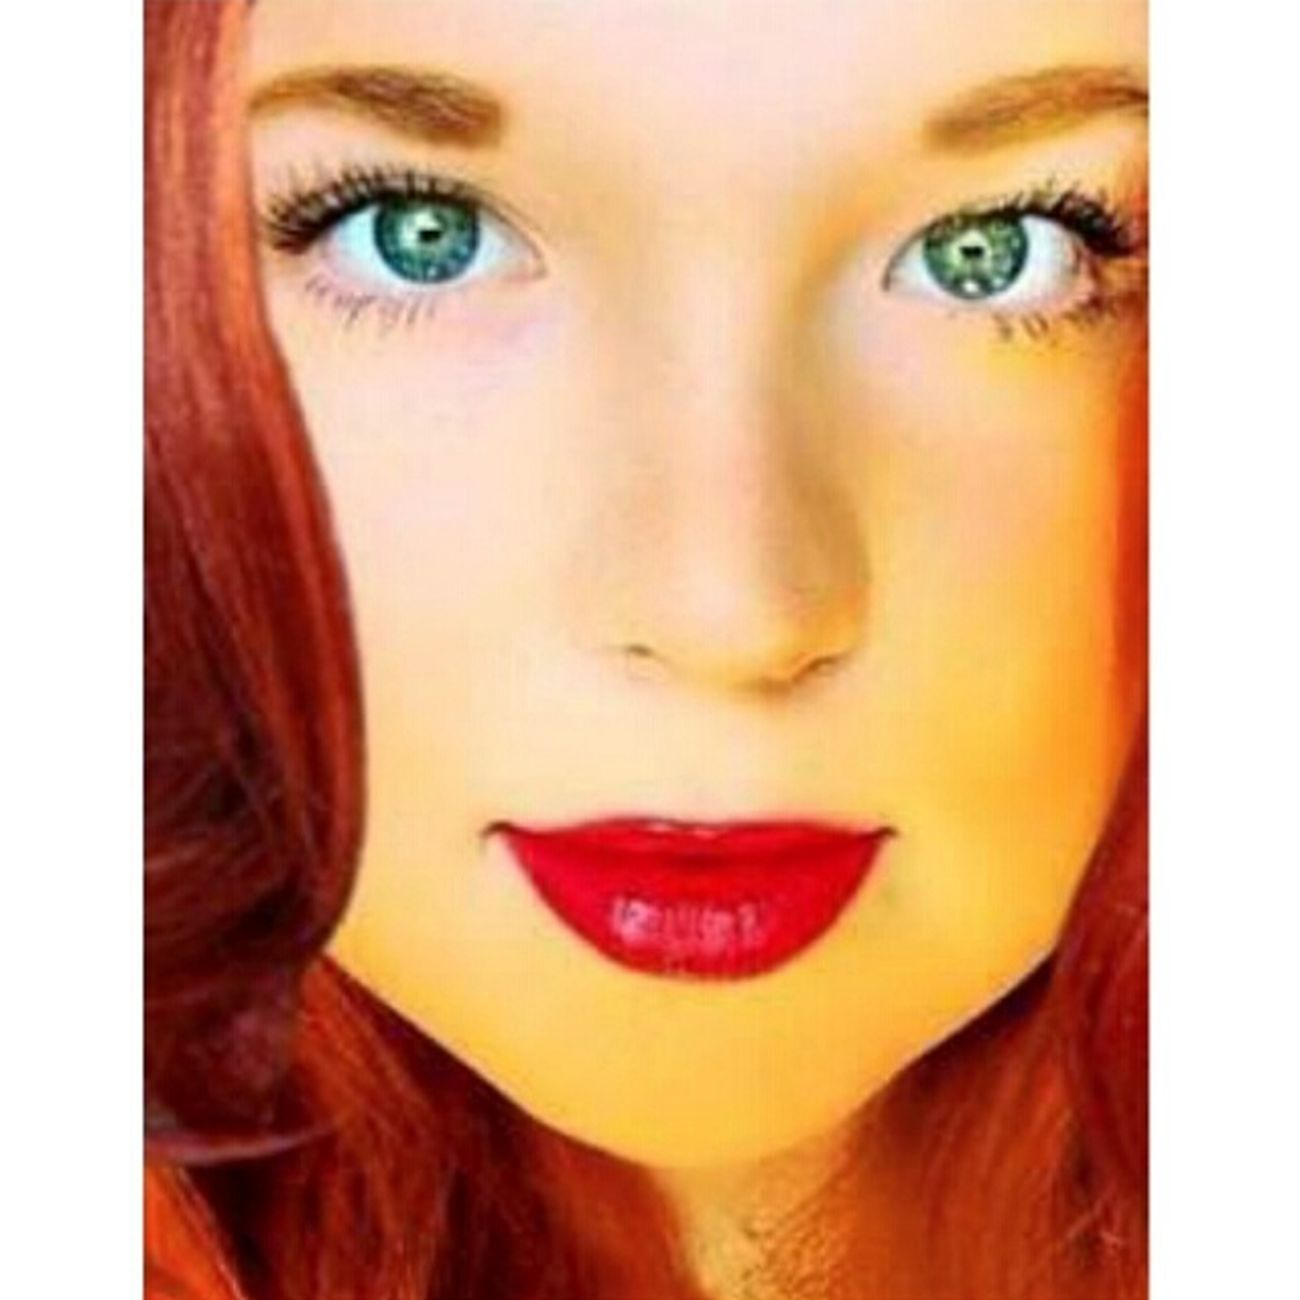 Selfie ✌ Redhead Beautiful Girl Love ♥ Green Eyes RedHAIR ❤ Redhairdon'tcare Emeraldgreen Today's Hot Look